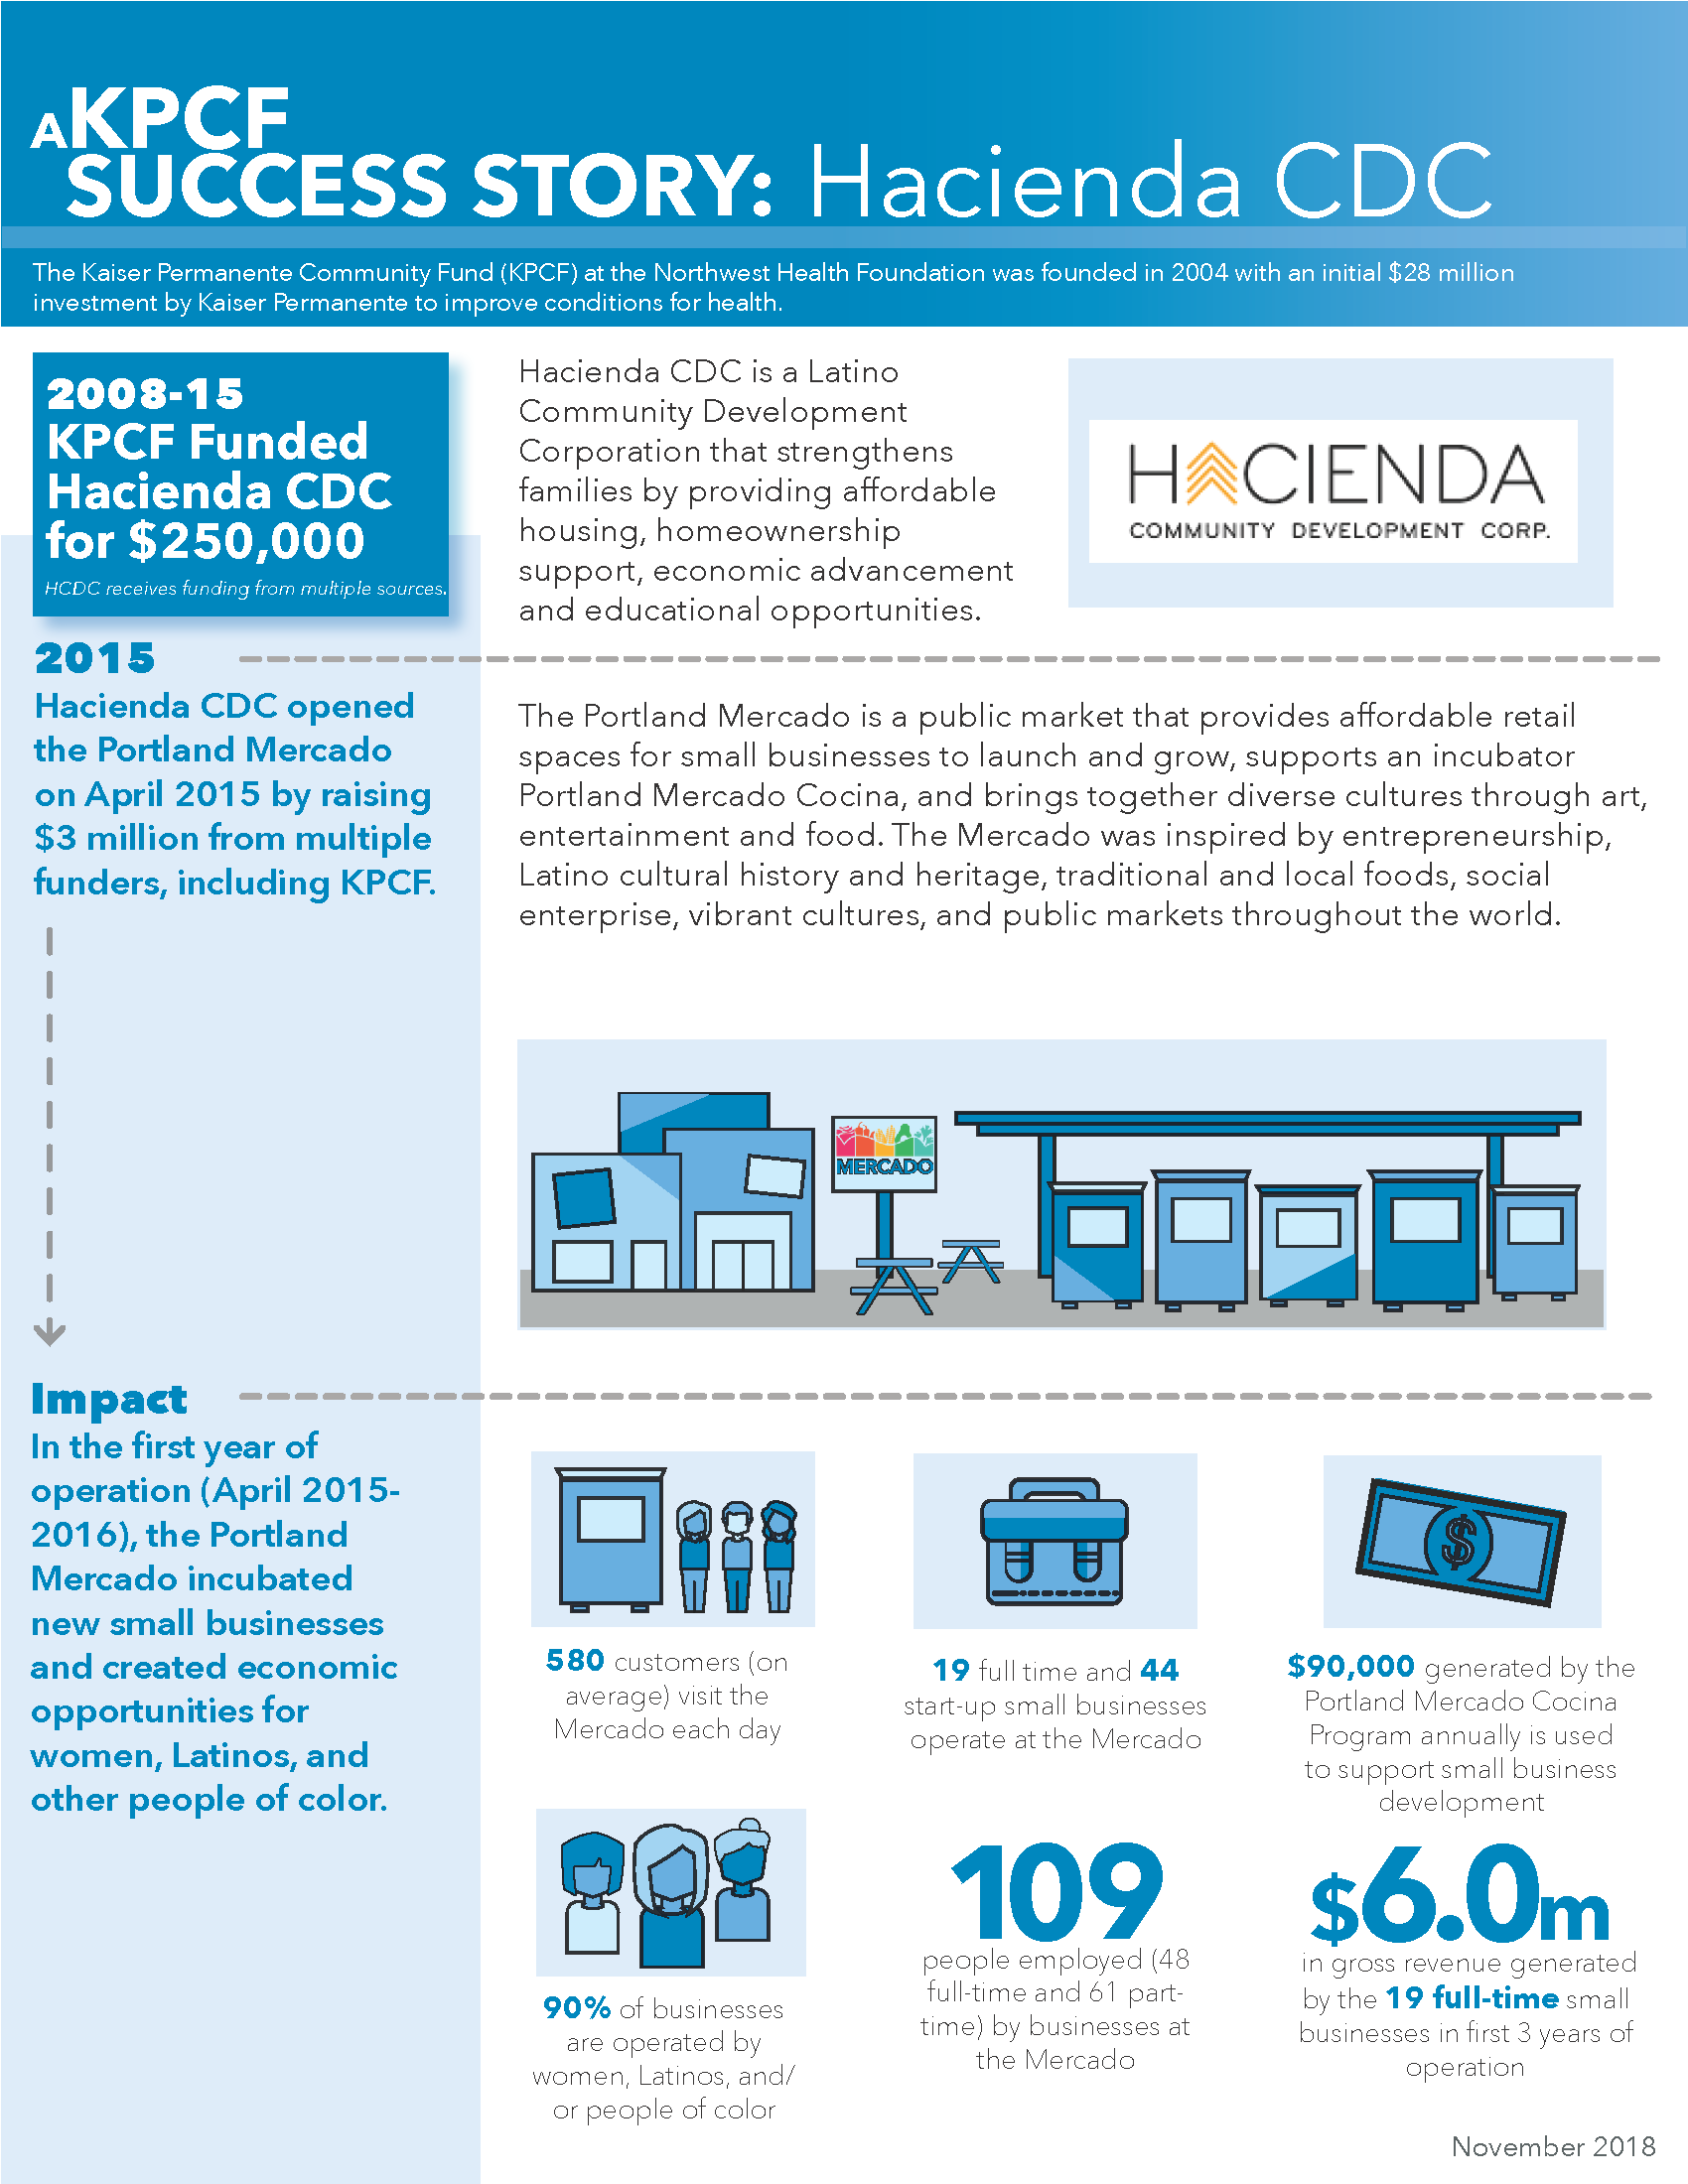 "An infographic describing the successes of Hacienda CDC's Portland Mercado. ""580 customers (on average) visit the Mercado each day. 19 full time and 44 start-up small businesses operate at the Mercado. $90,000 generated by the Portland Mercado Cocina Program annually is used to support small business development. 90% of businesses are operated by women, Latinos, and/or people of color. 109 people employed (48 full-time and 61 part-time) by businesses at the Mercado. $6.0m in gross revenue generated by the 19 full-time small businesses in first 3 years of operation."""